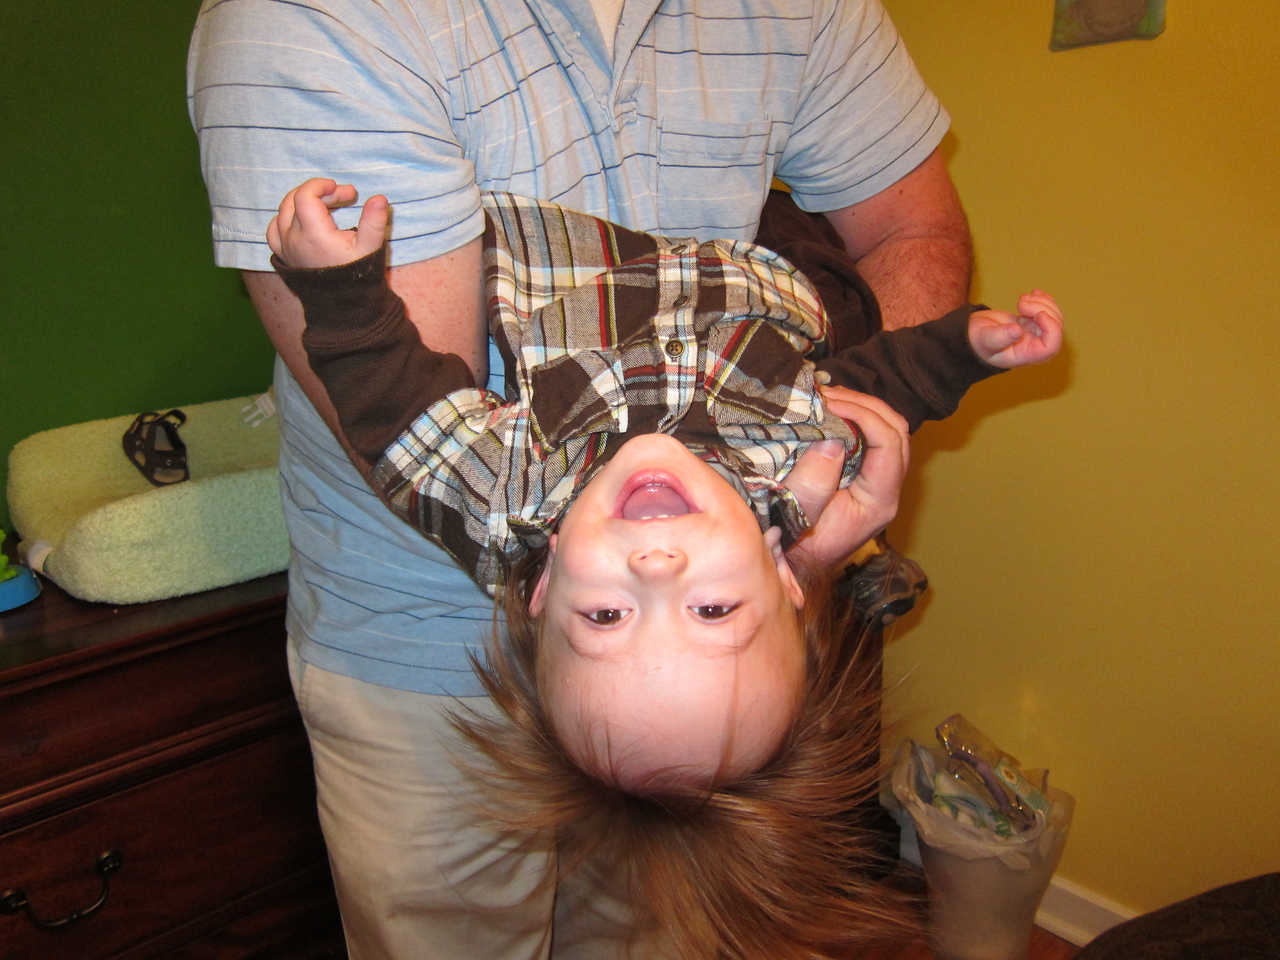 Upside down with daddy